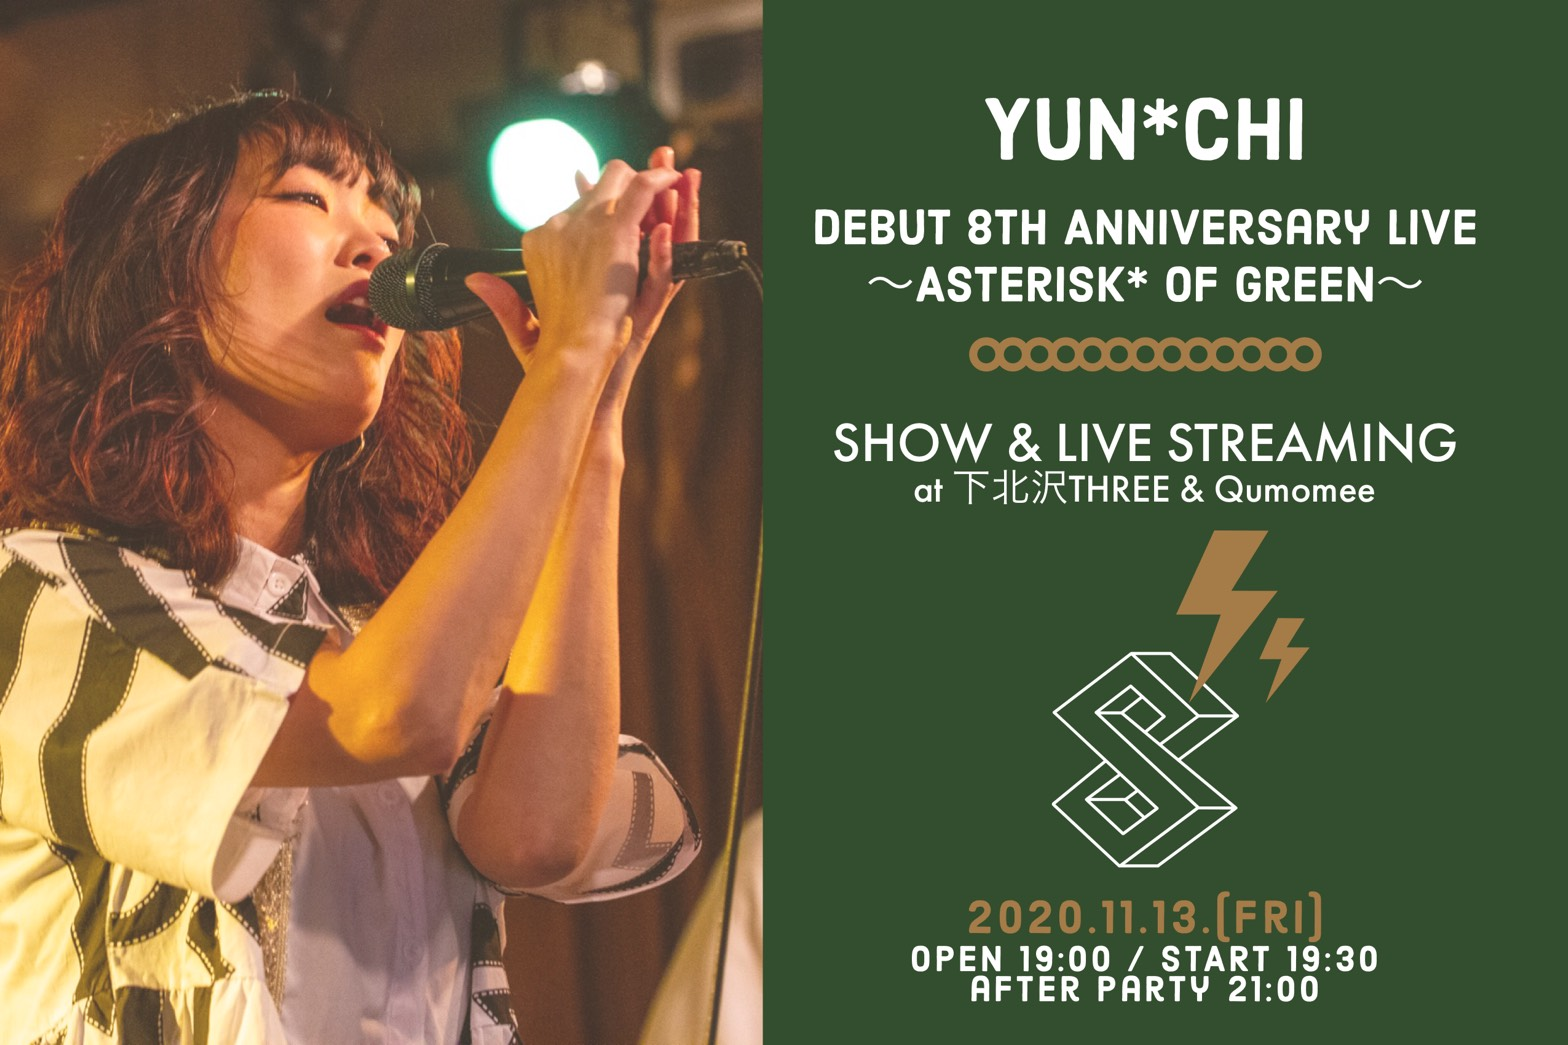 Yun*chi debut 8th Anniversary LIVE ~Asterisk* of Green~